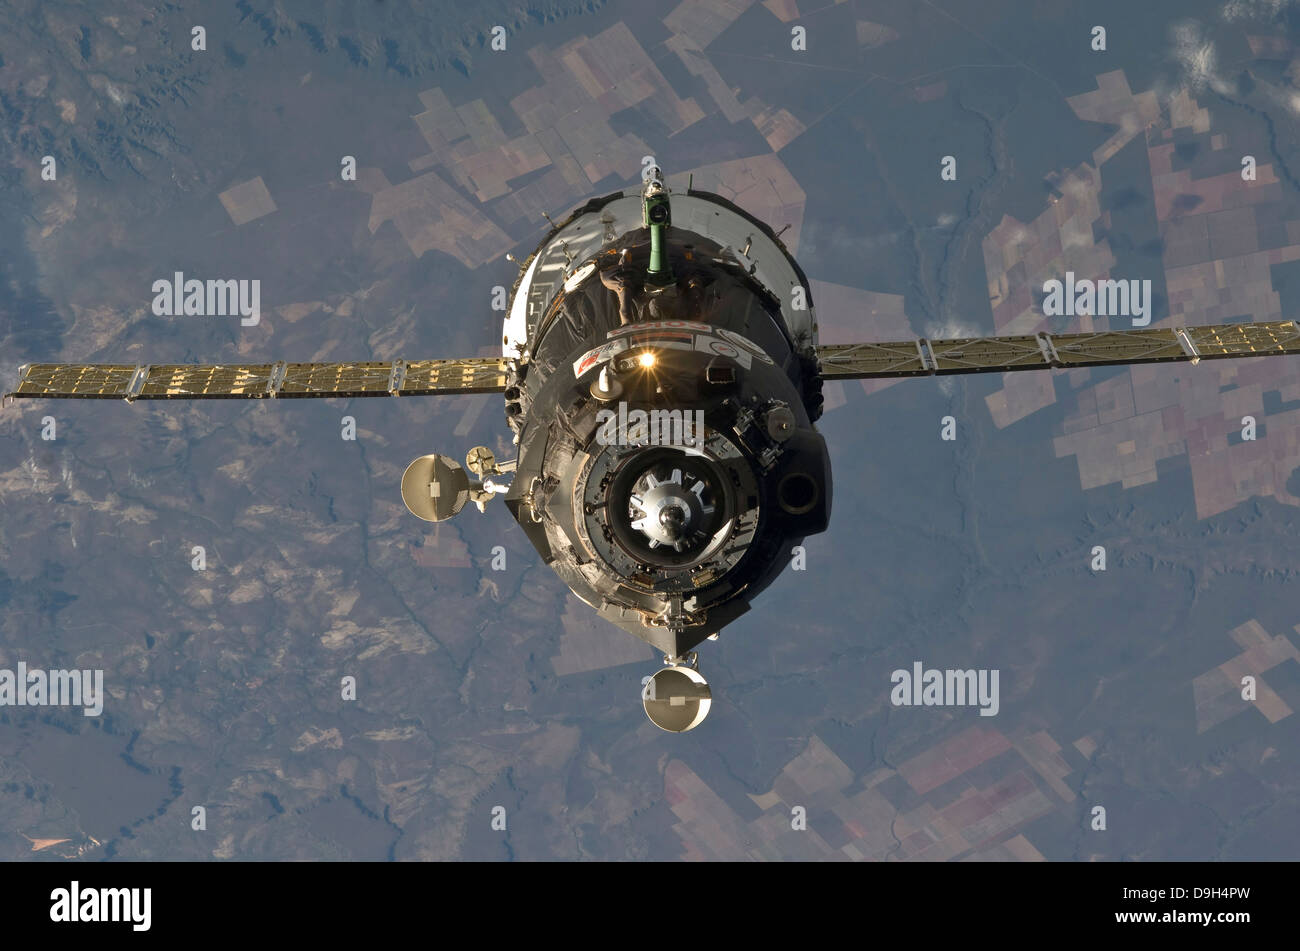 The Soyuz TMA-19 spacecraft. - Stock Image